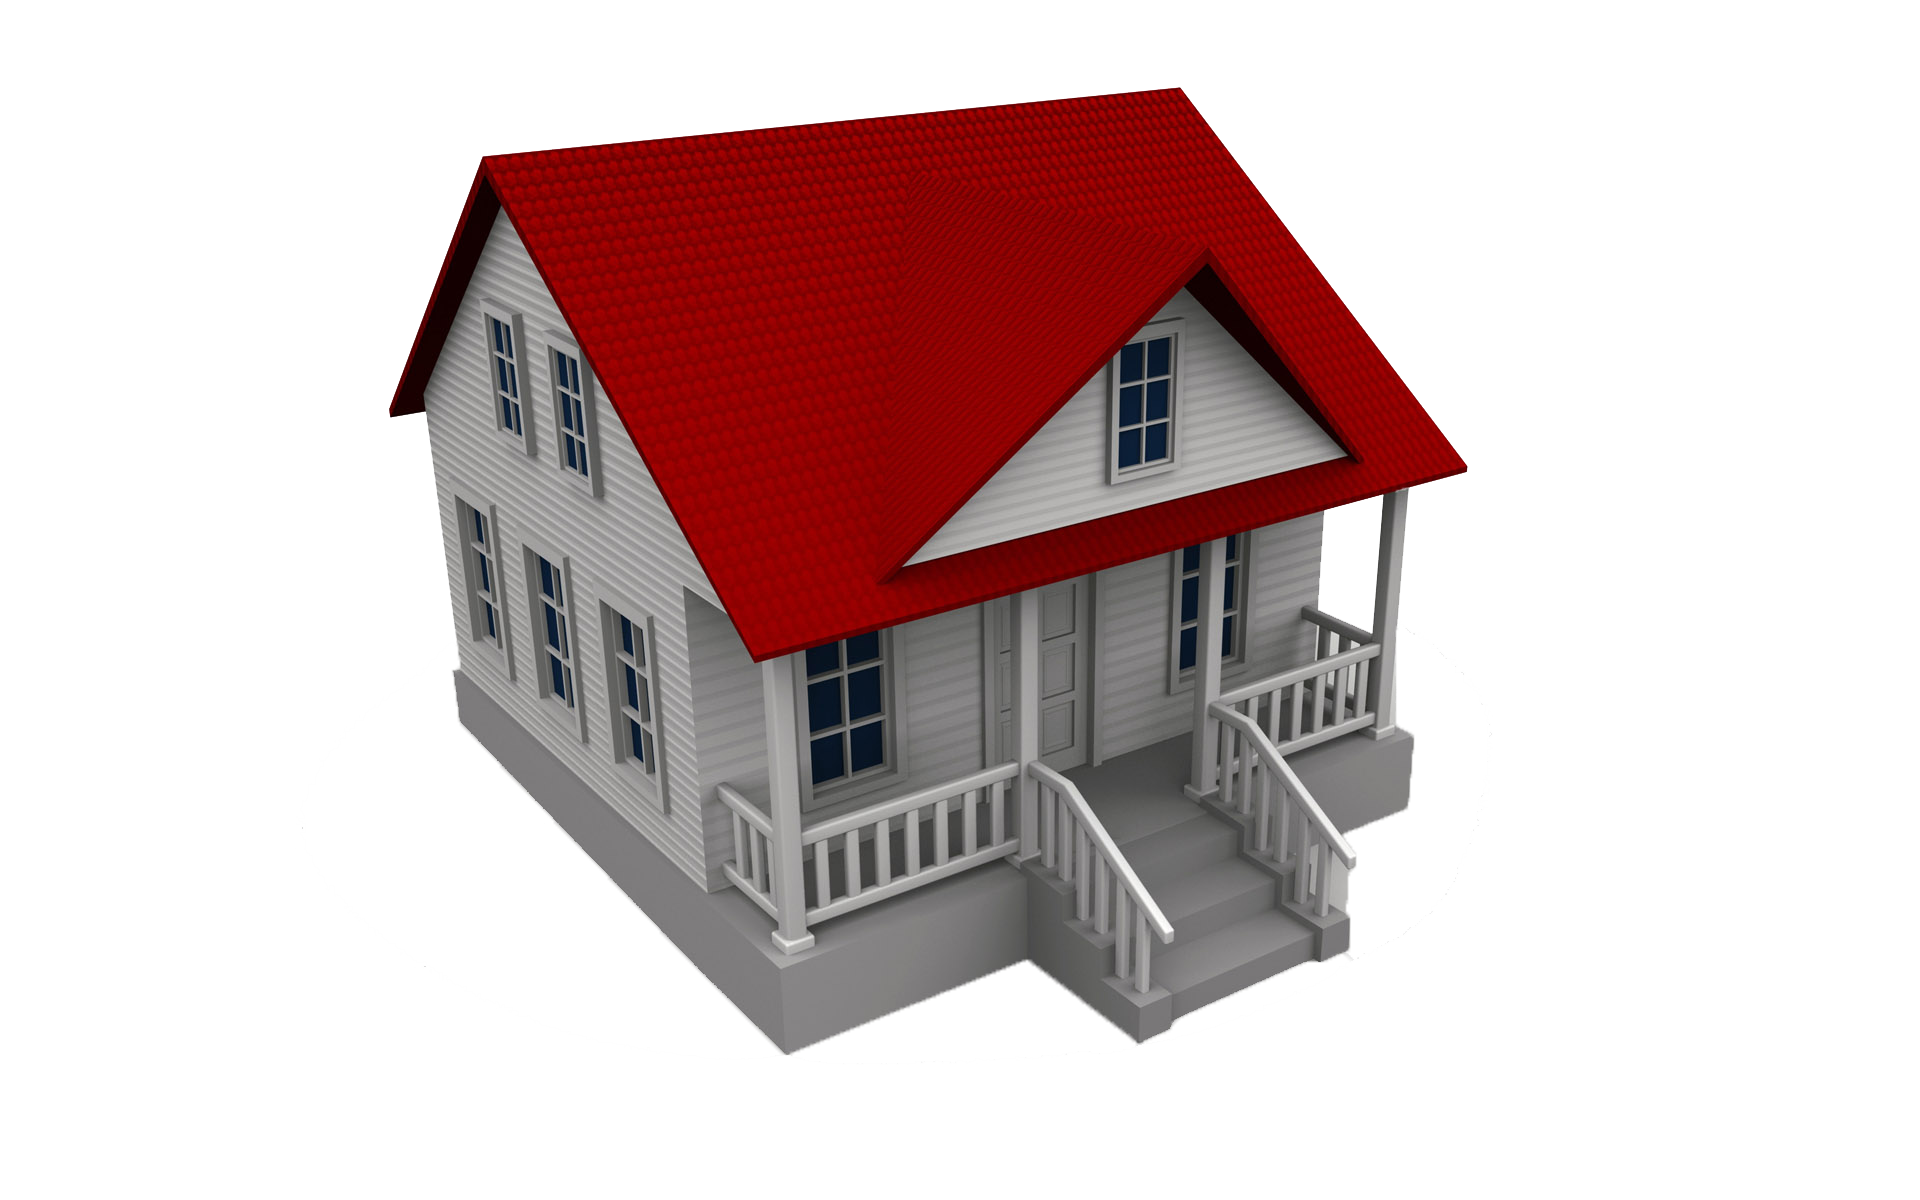 3d home png. House d computer graphics